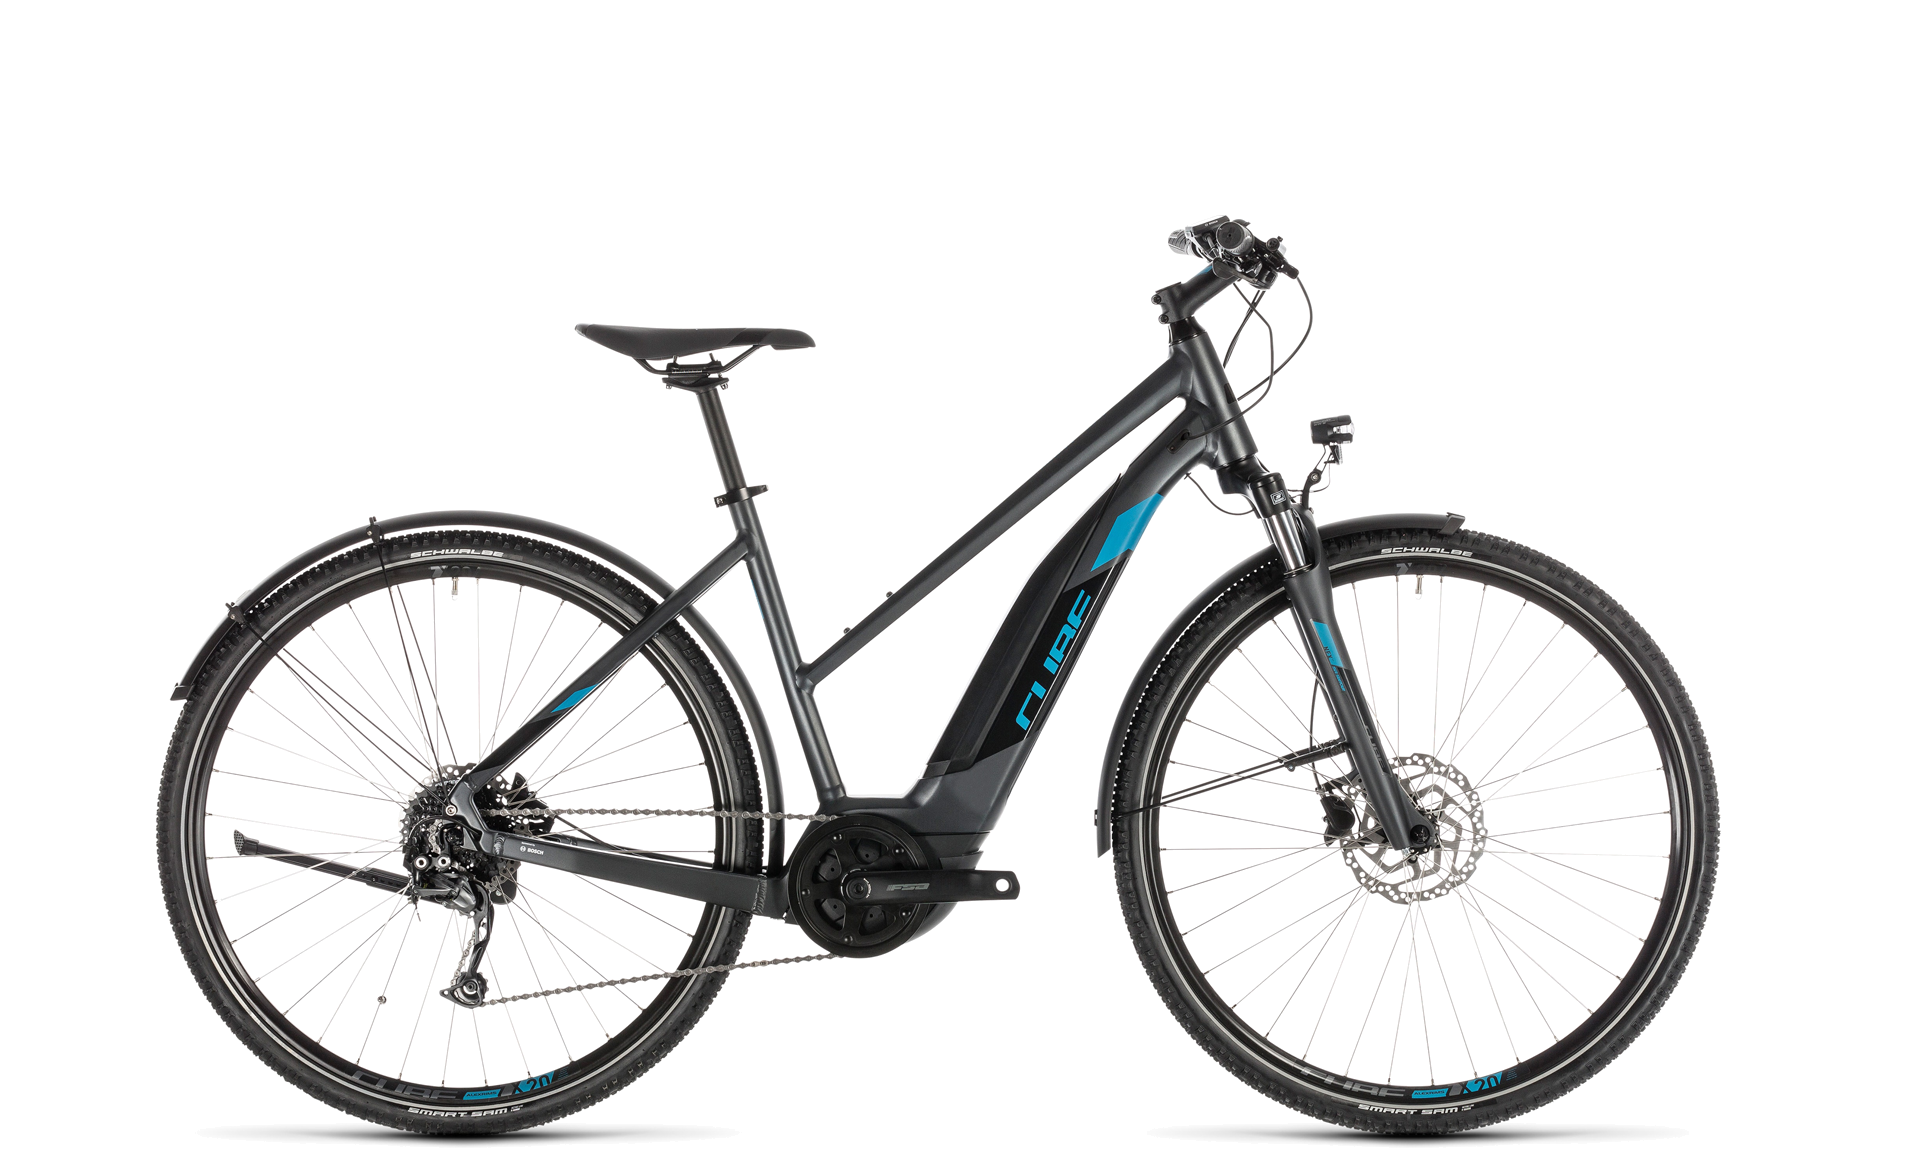 https://www.ovelo.fr/13963-thickbox_extralarge/cross-hybrid-one-allroad-400-ou-500wh-iridiumnblue-cadre-mixte.jpg